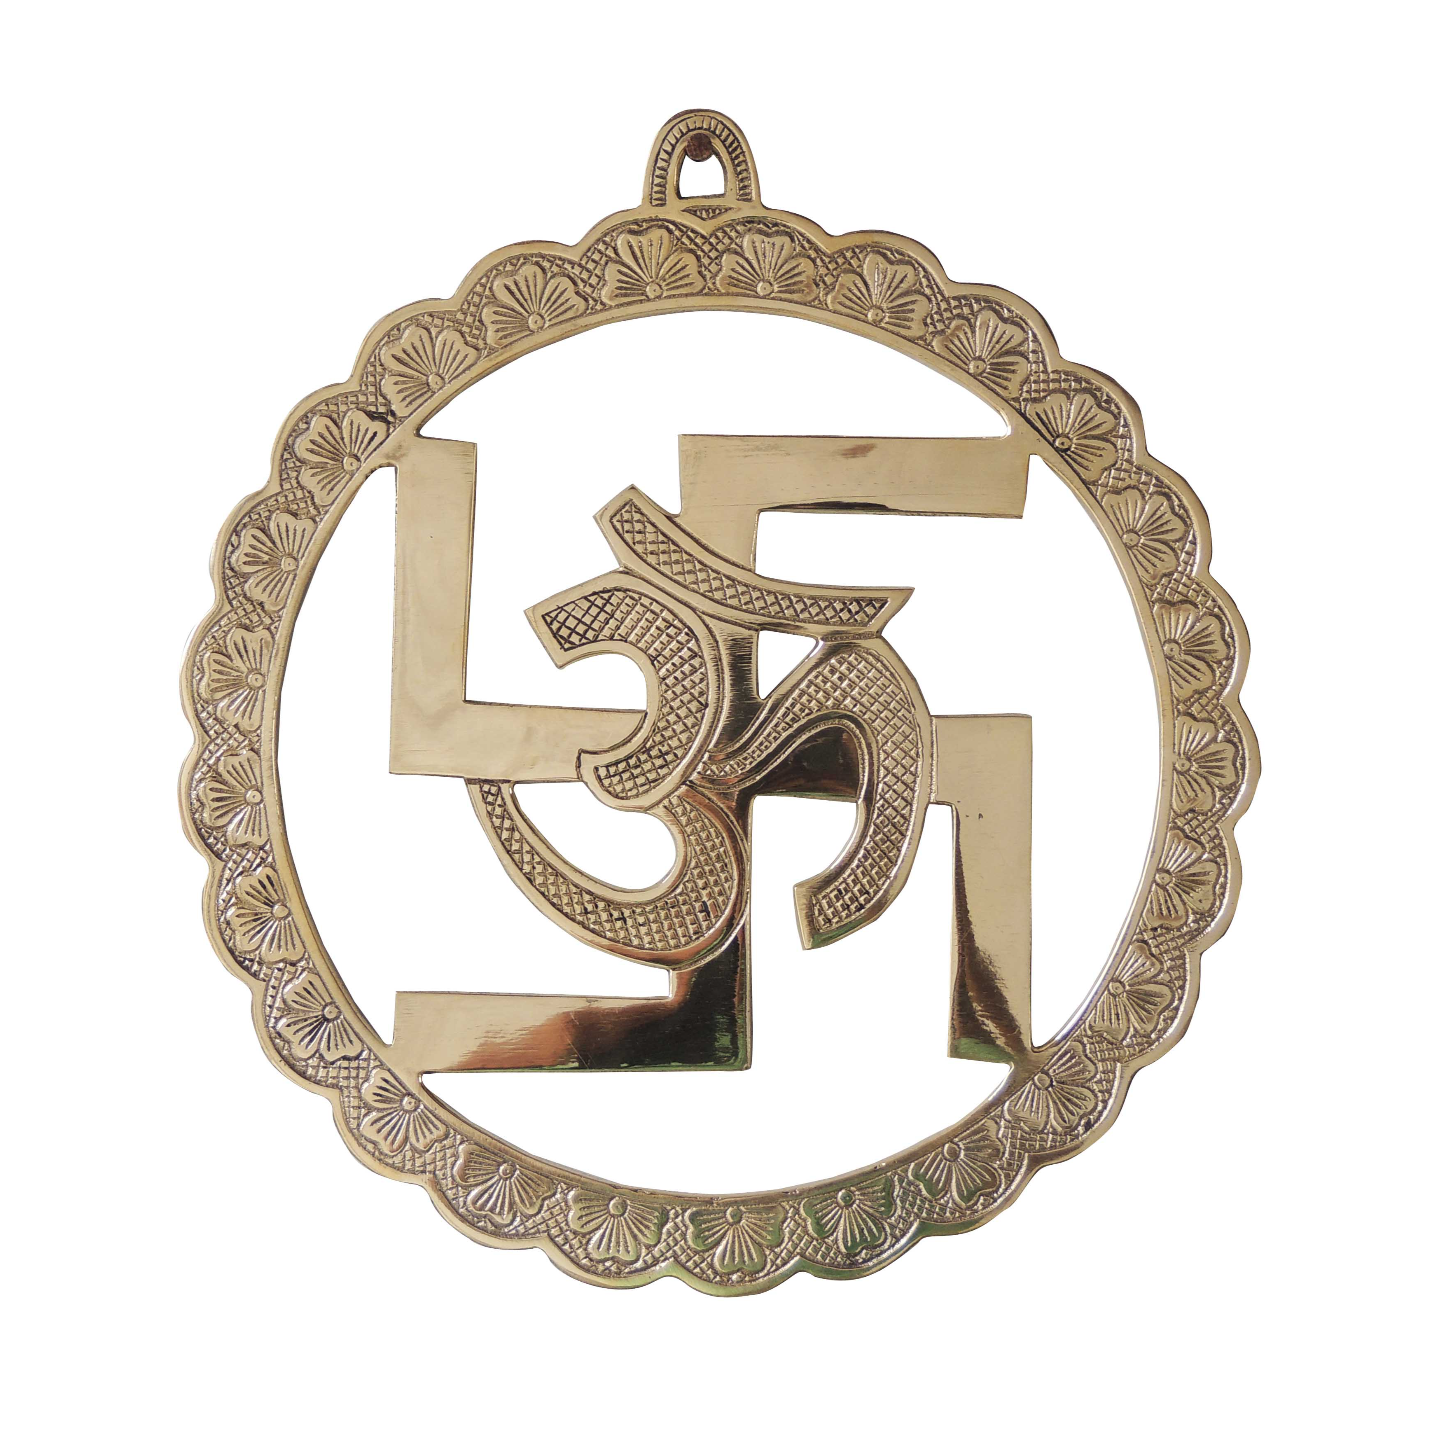 Brass Wall Hanging Swastic And Om - 9.79.7 Inch  F592 F